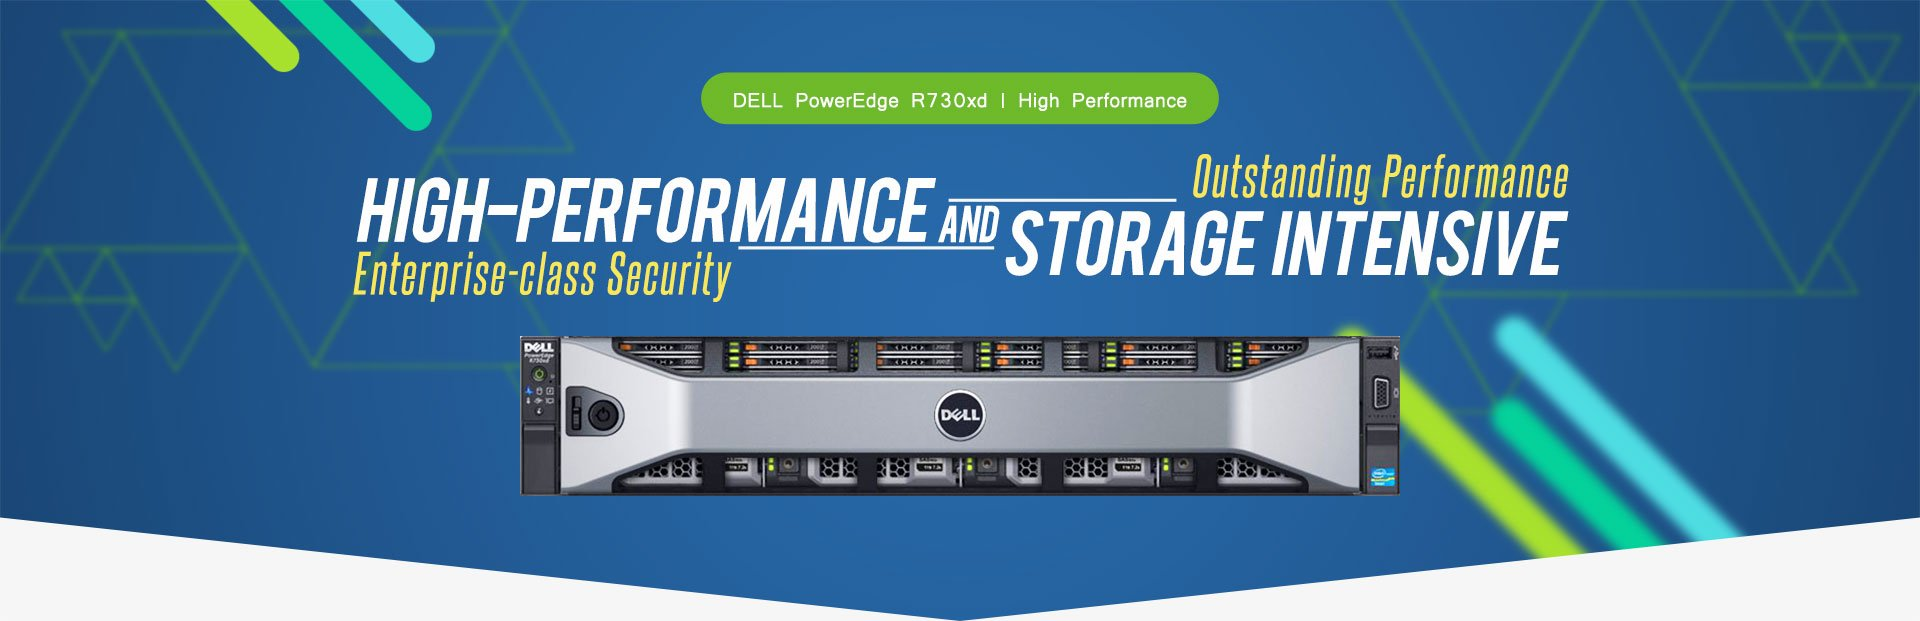 DELL PowerEdge R730xd, High Performance High-Performance and Storage Intensive Enterprise-class Security, Outstanding Performance